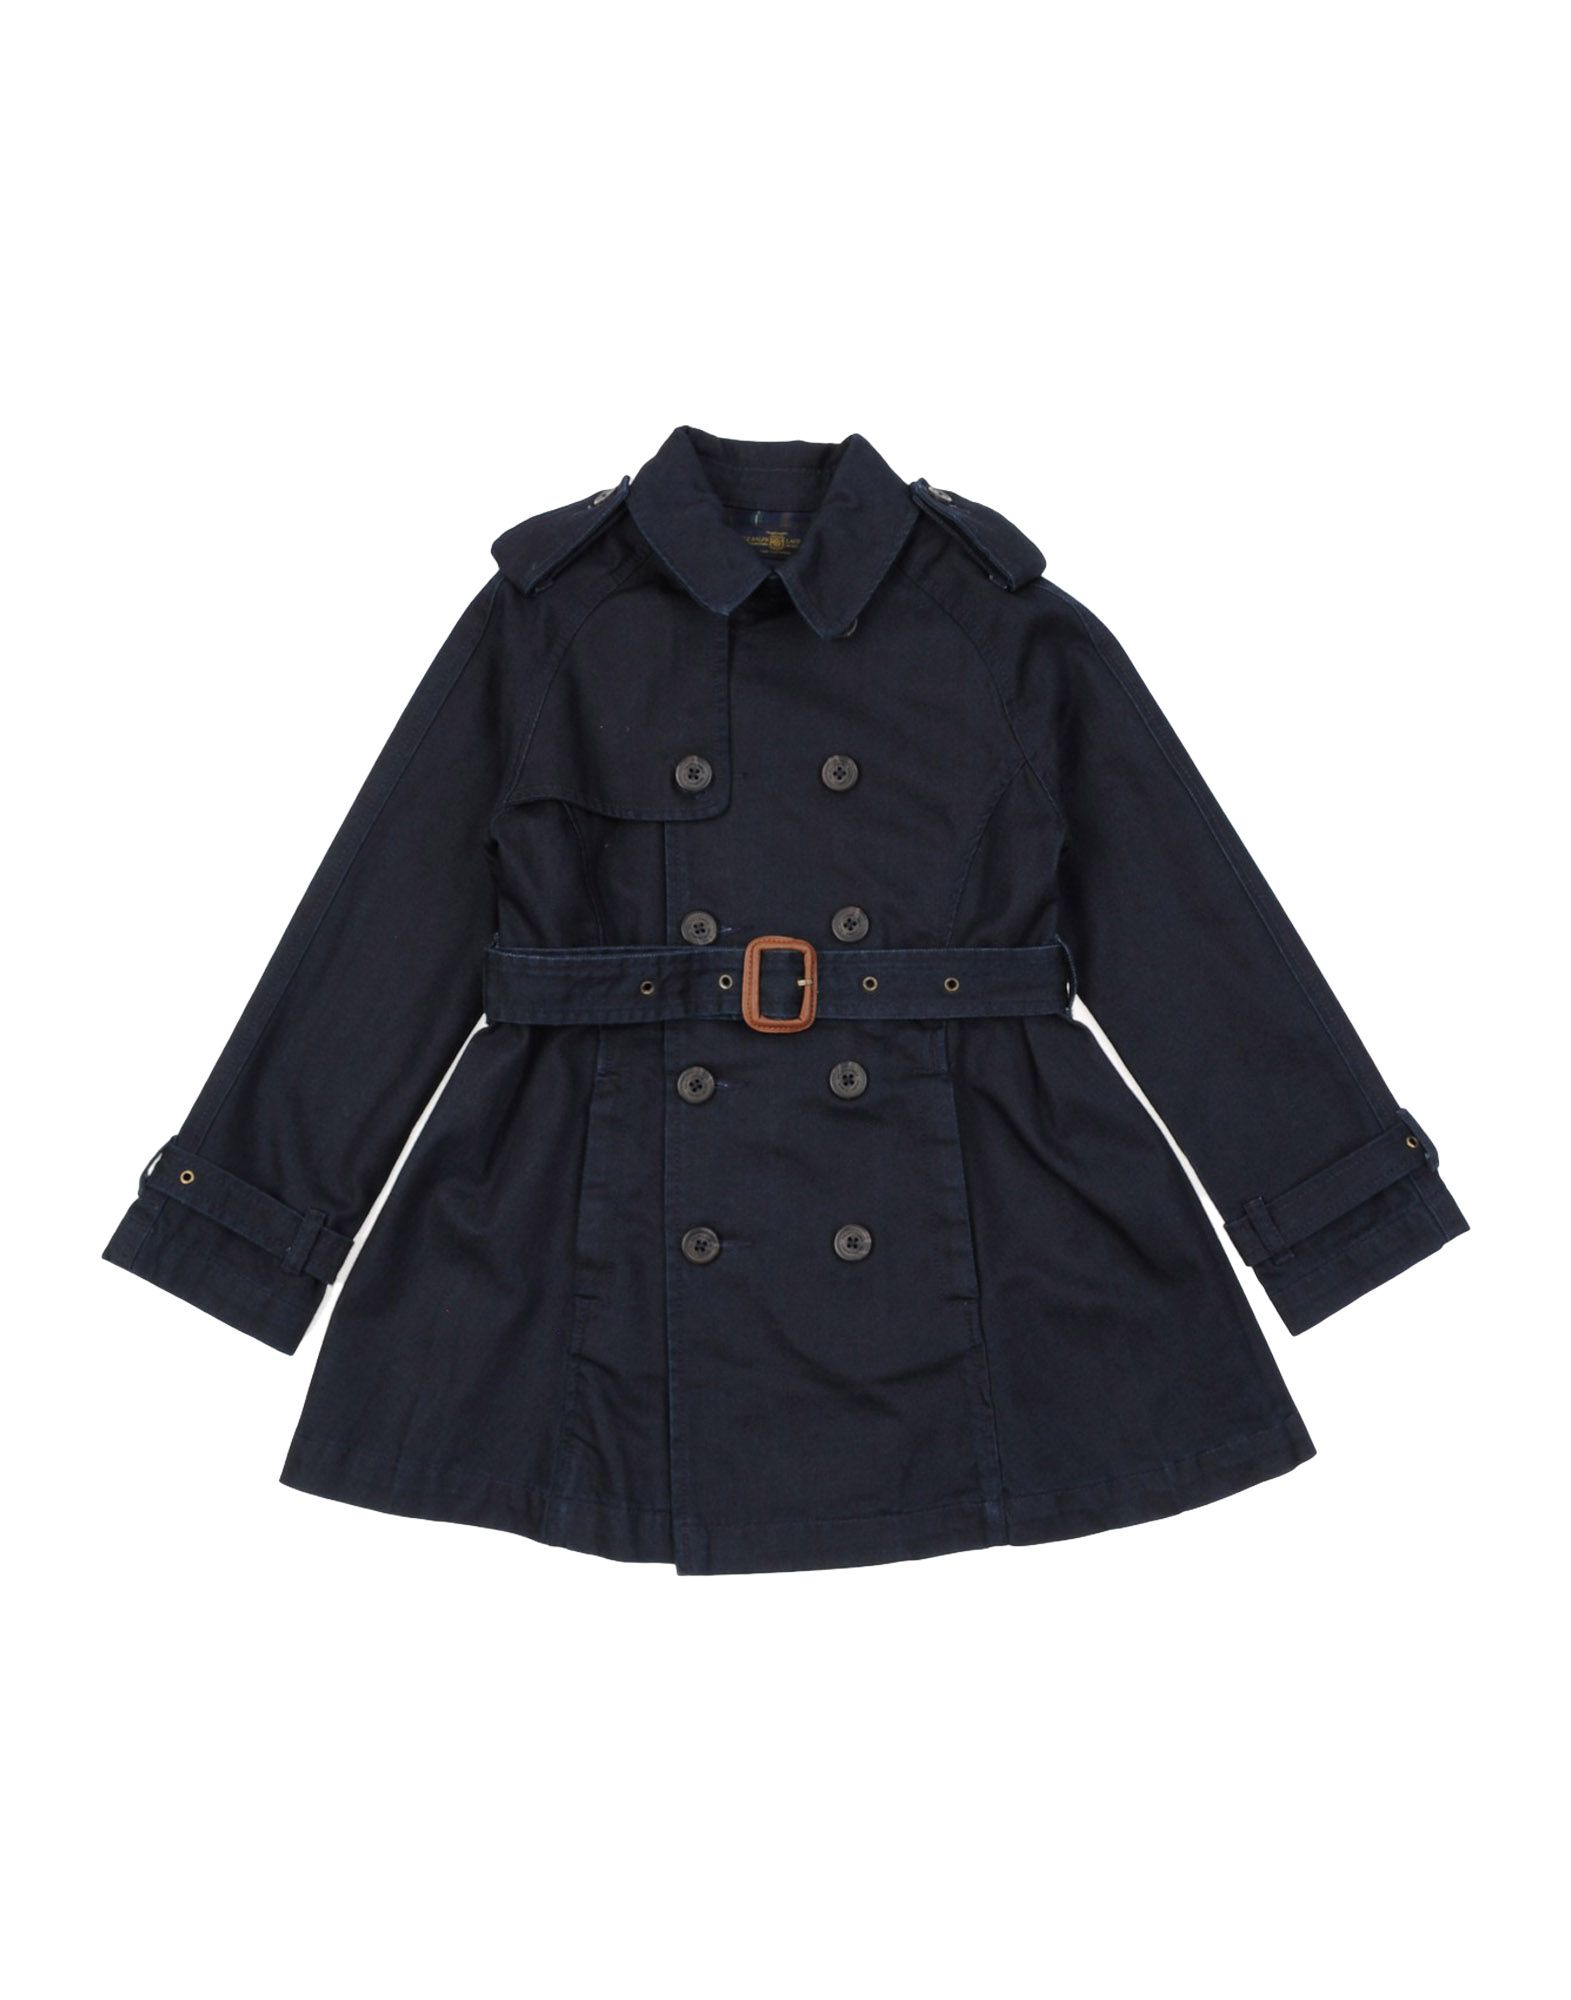 RALPH LAUREN Denim outerwear